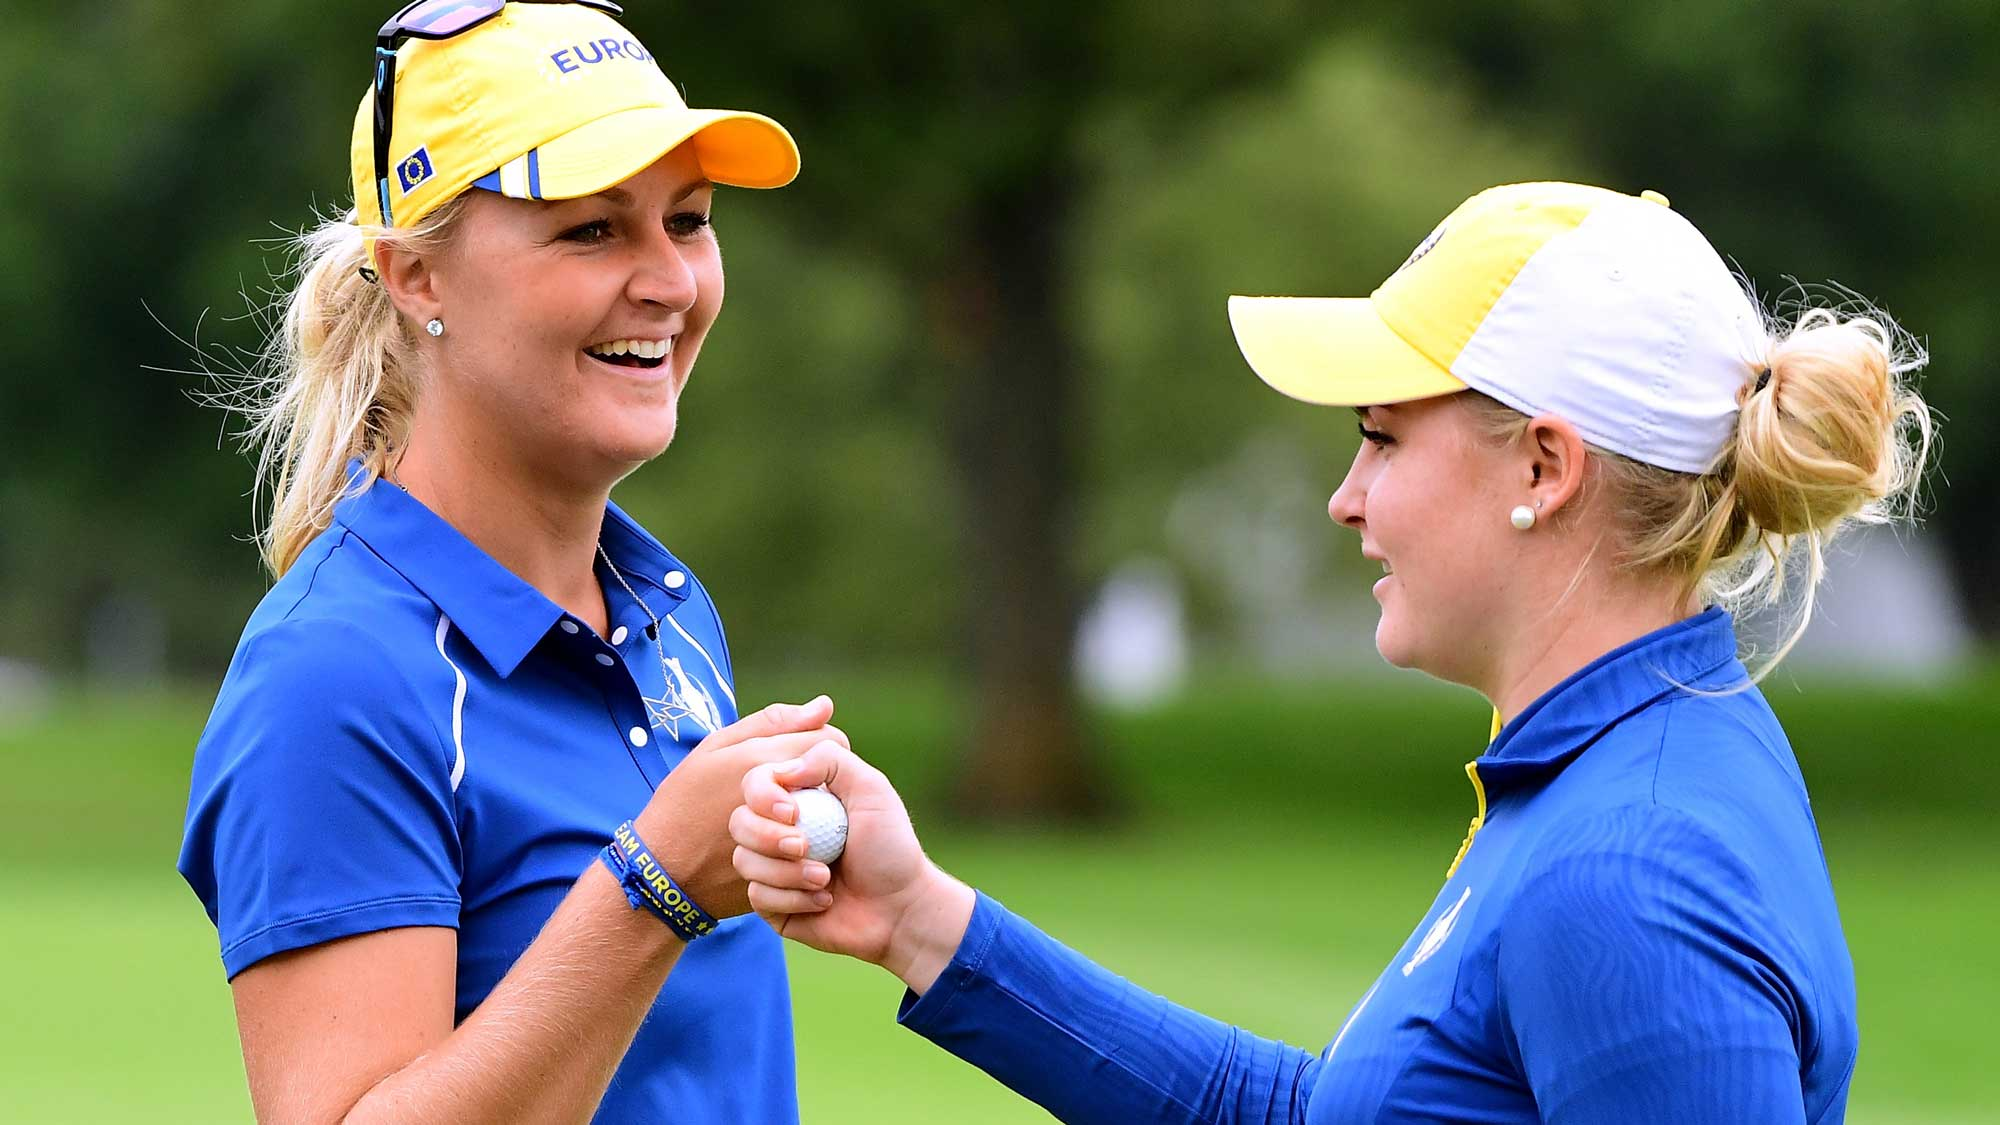 Anna Nordqvist and Charley Hull